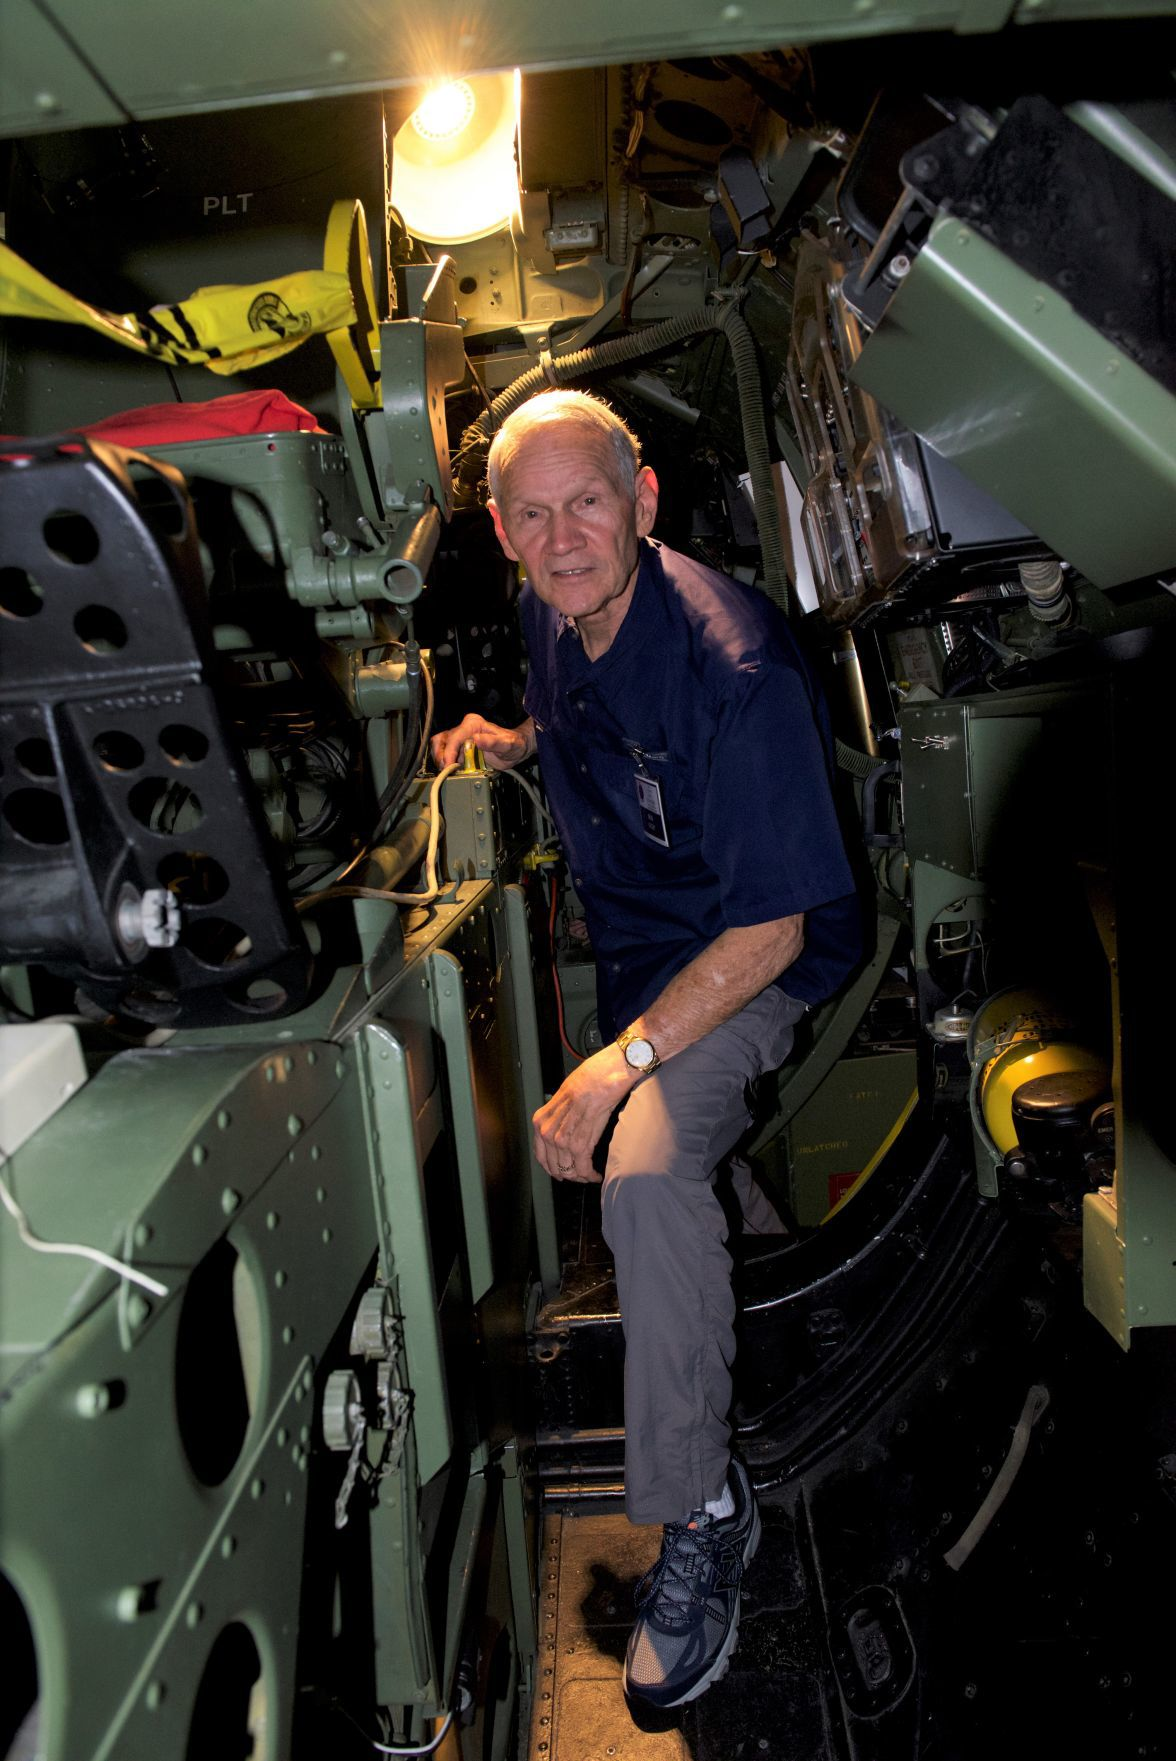 B-47 vets hold final reunion in Omaha